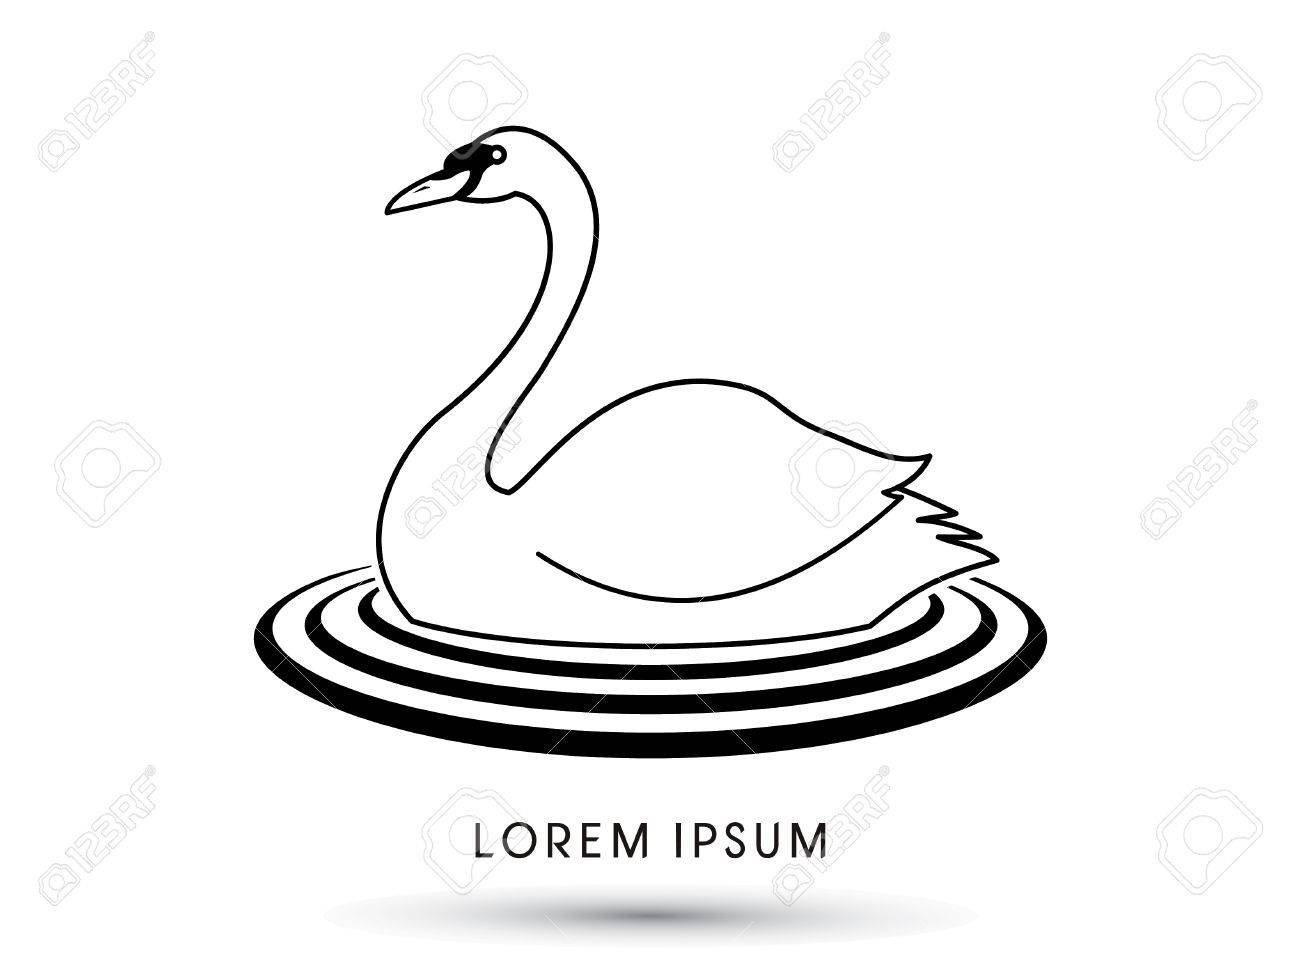 Swan Swimming Designed Using Outline Graphic Vector Royalty Free